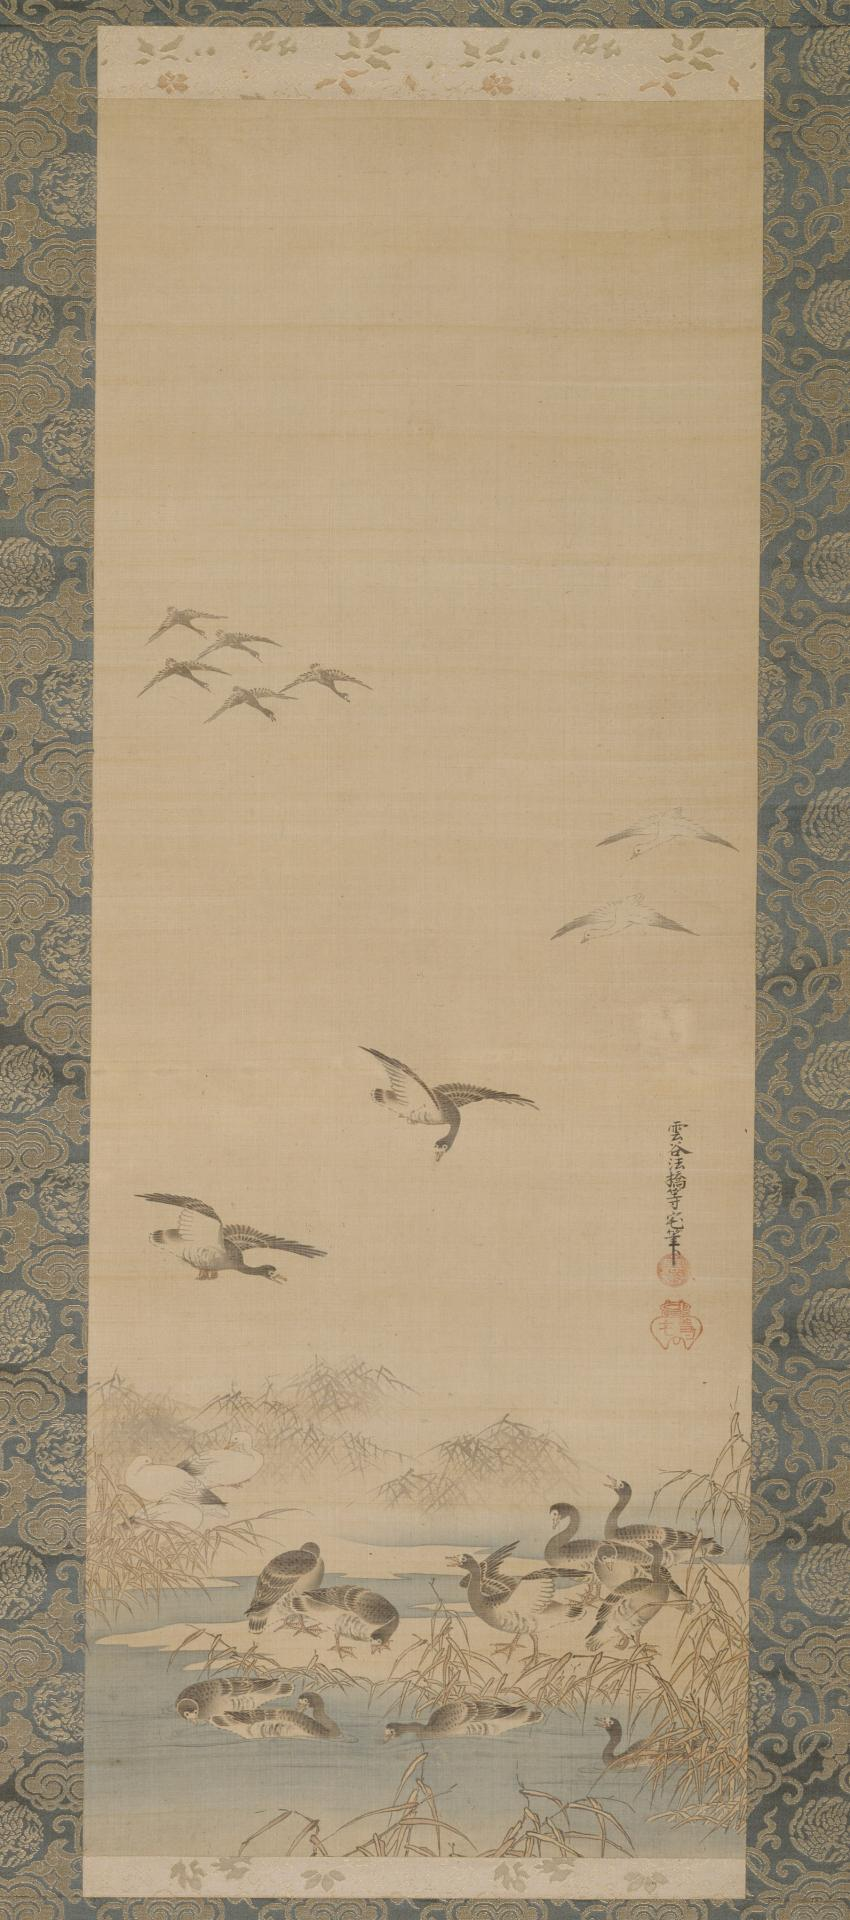 Geese in a landscape